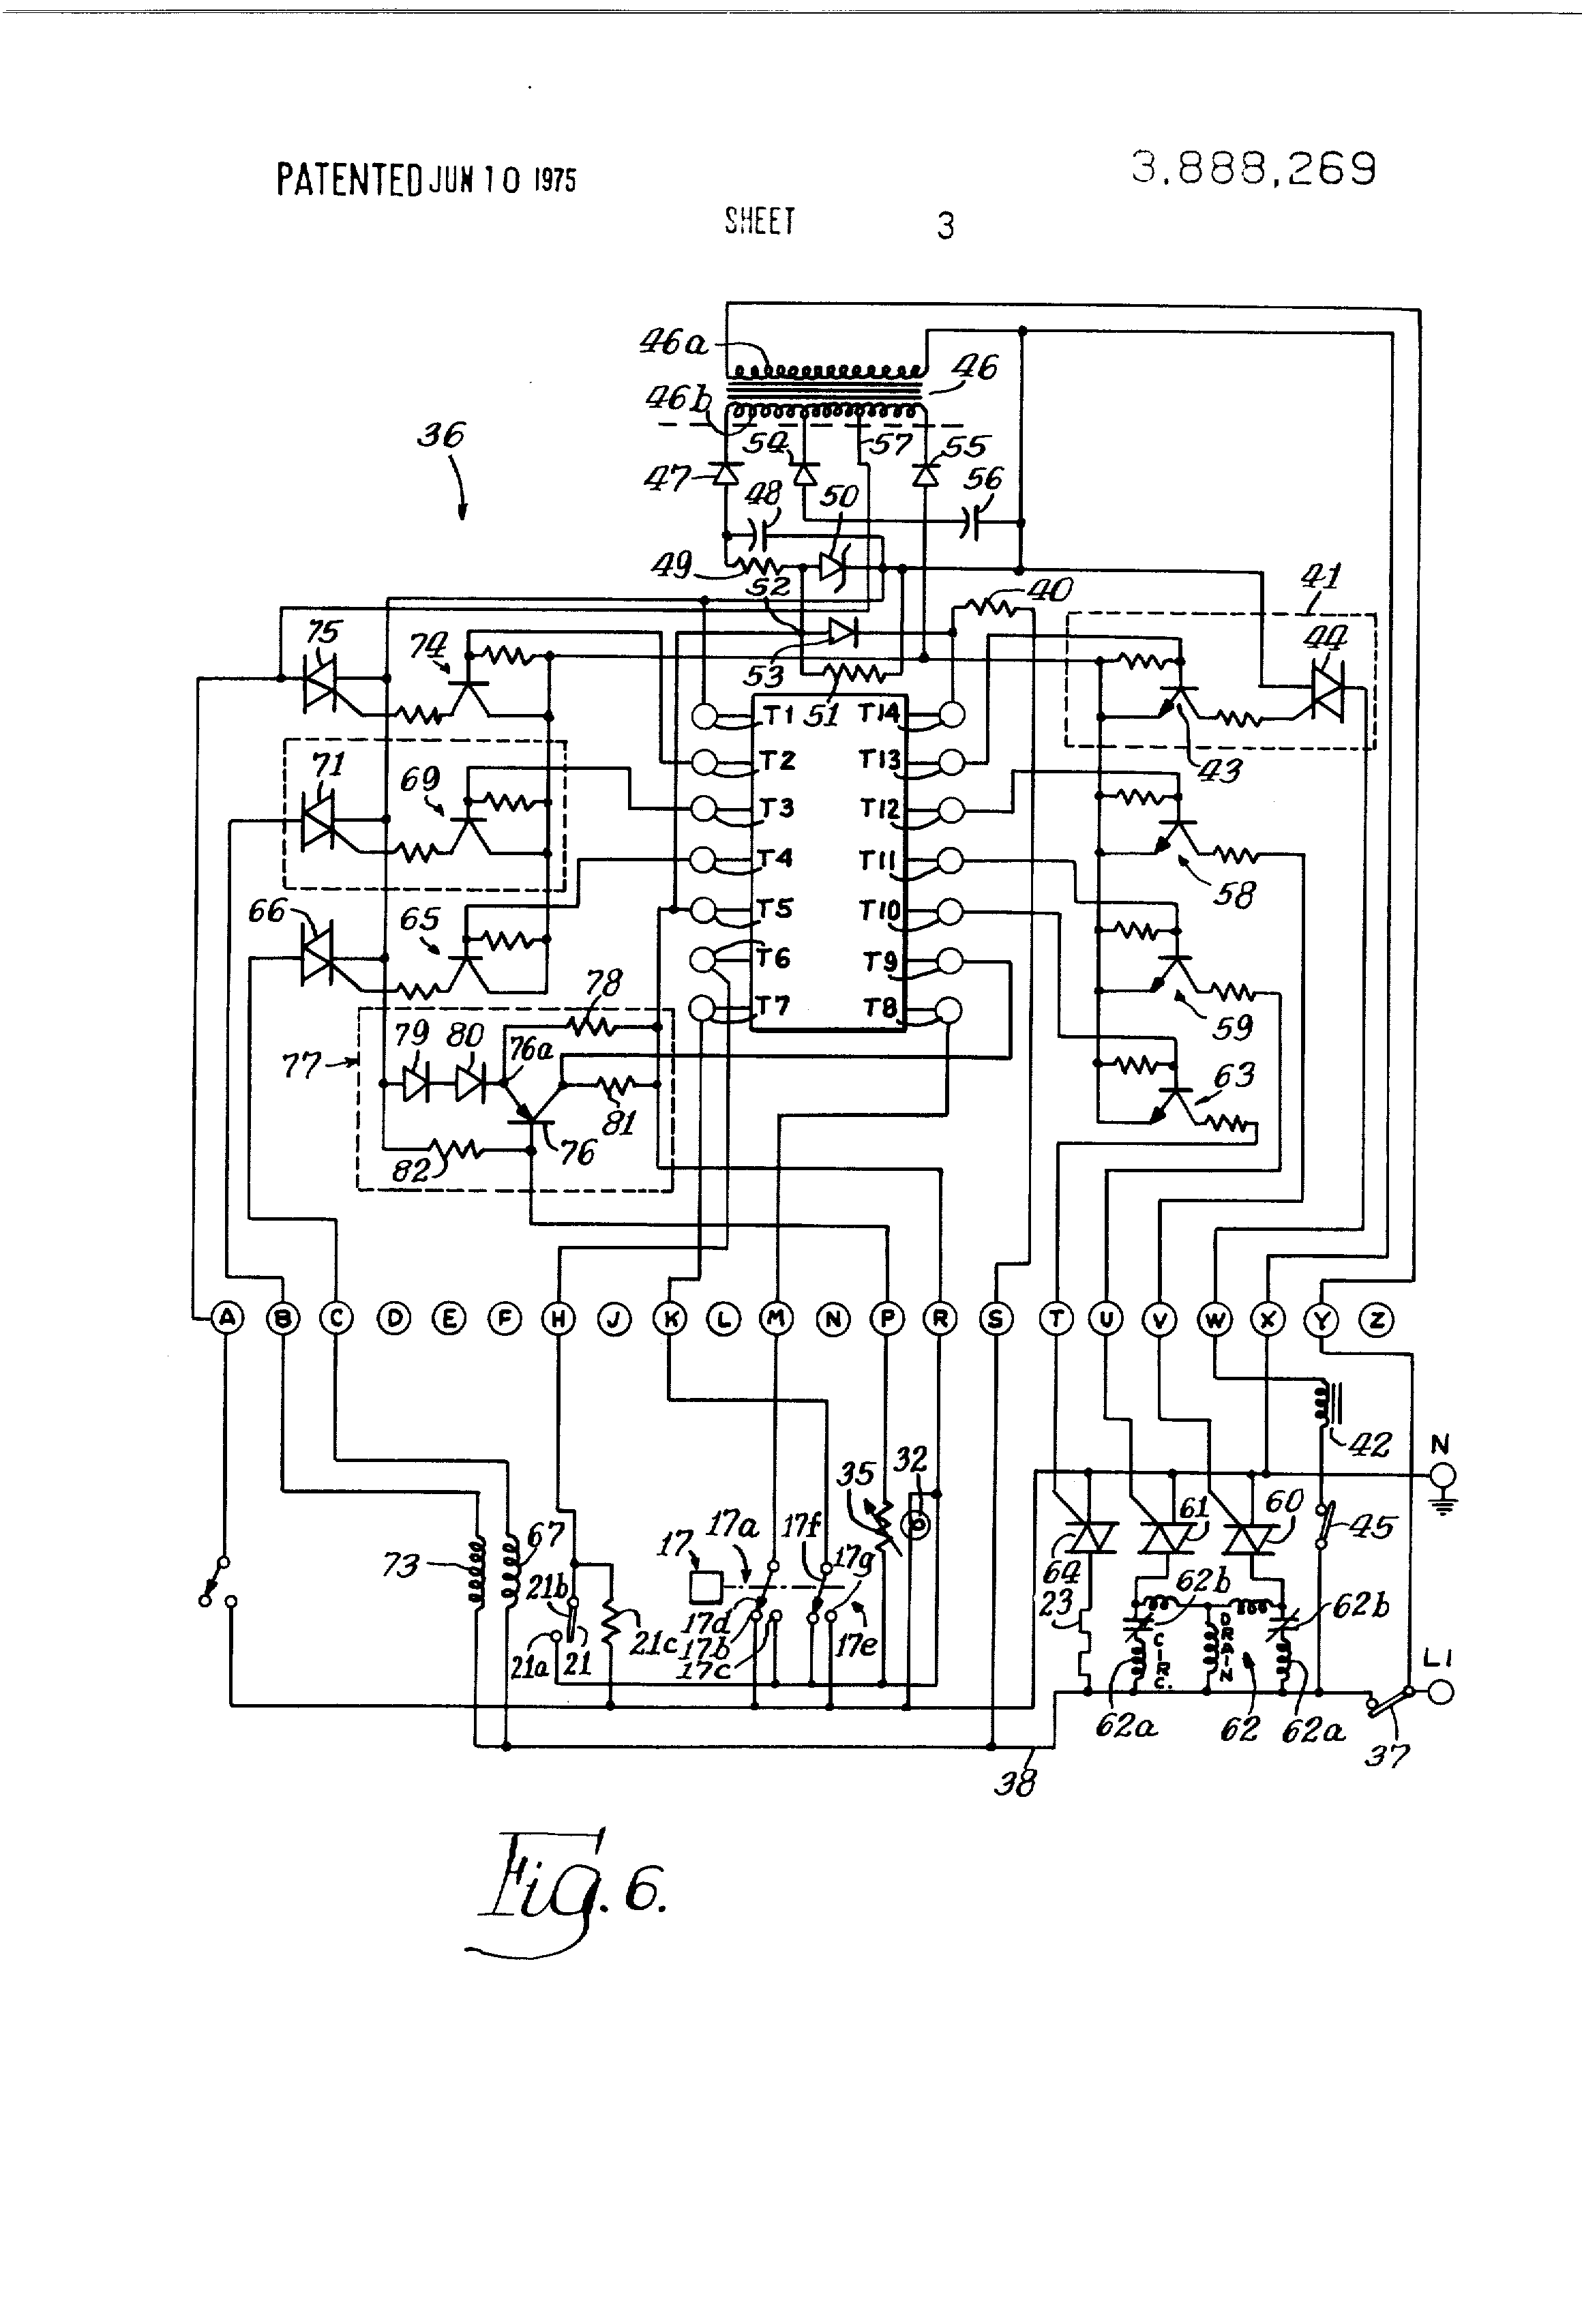 US3888269 3 patent us3888269 control system for dishwasher google patents Kenmore Dishwasher Wiring -Diagram at suagrazia.org